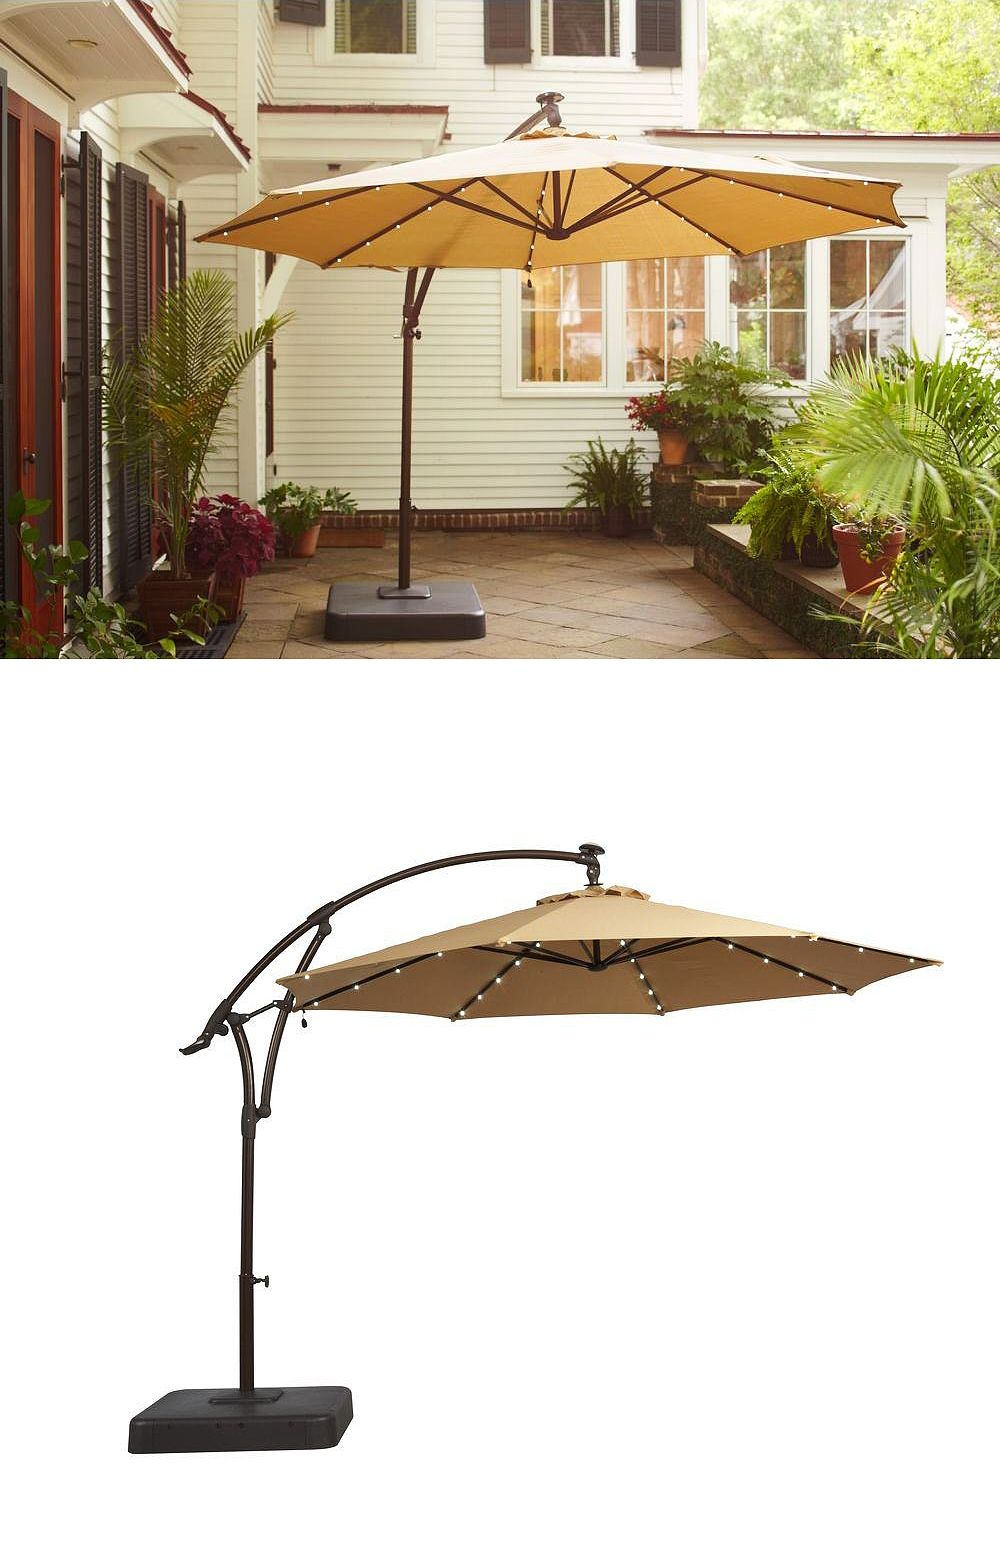 Thereu0027s Something Special About This Patio Umbrella: It Has Small  Solar Powered LED Lights